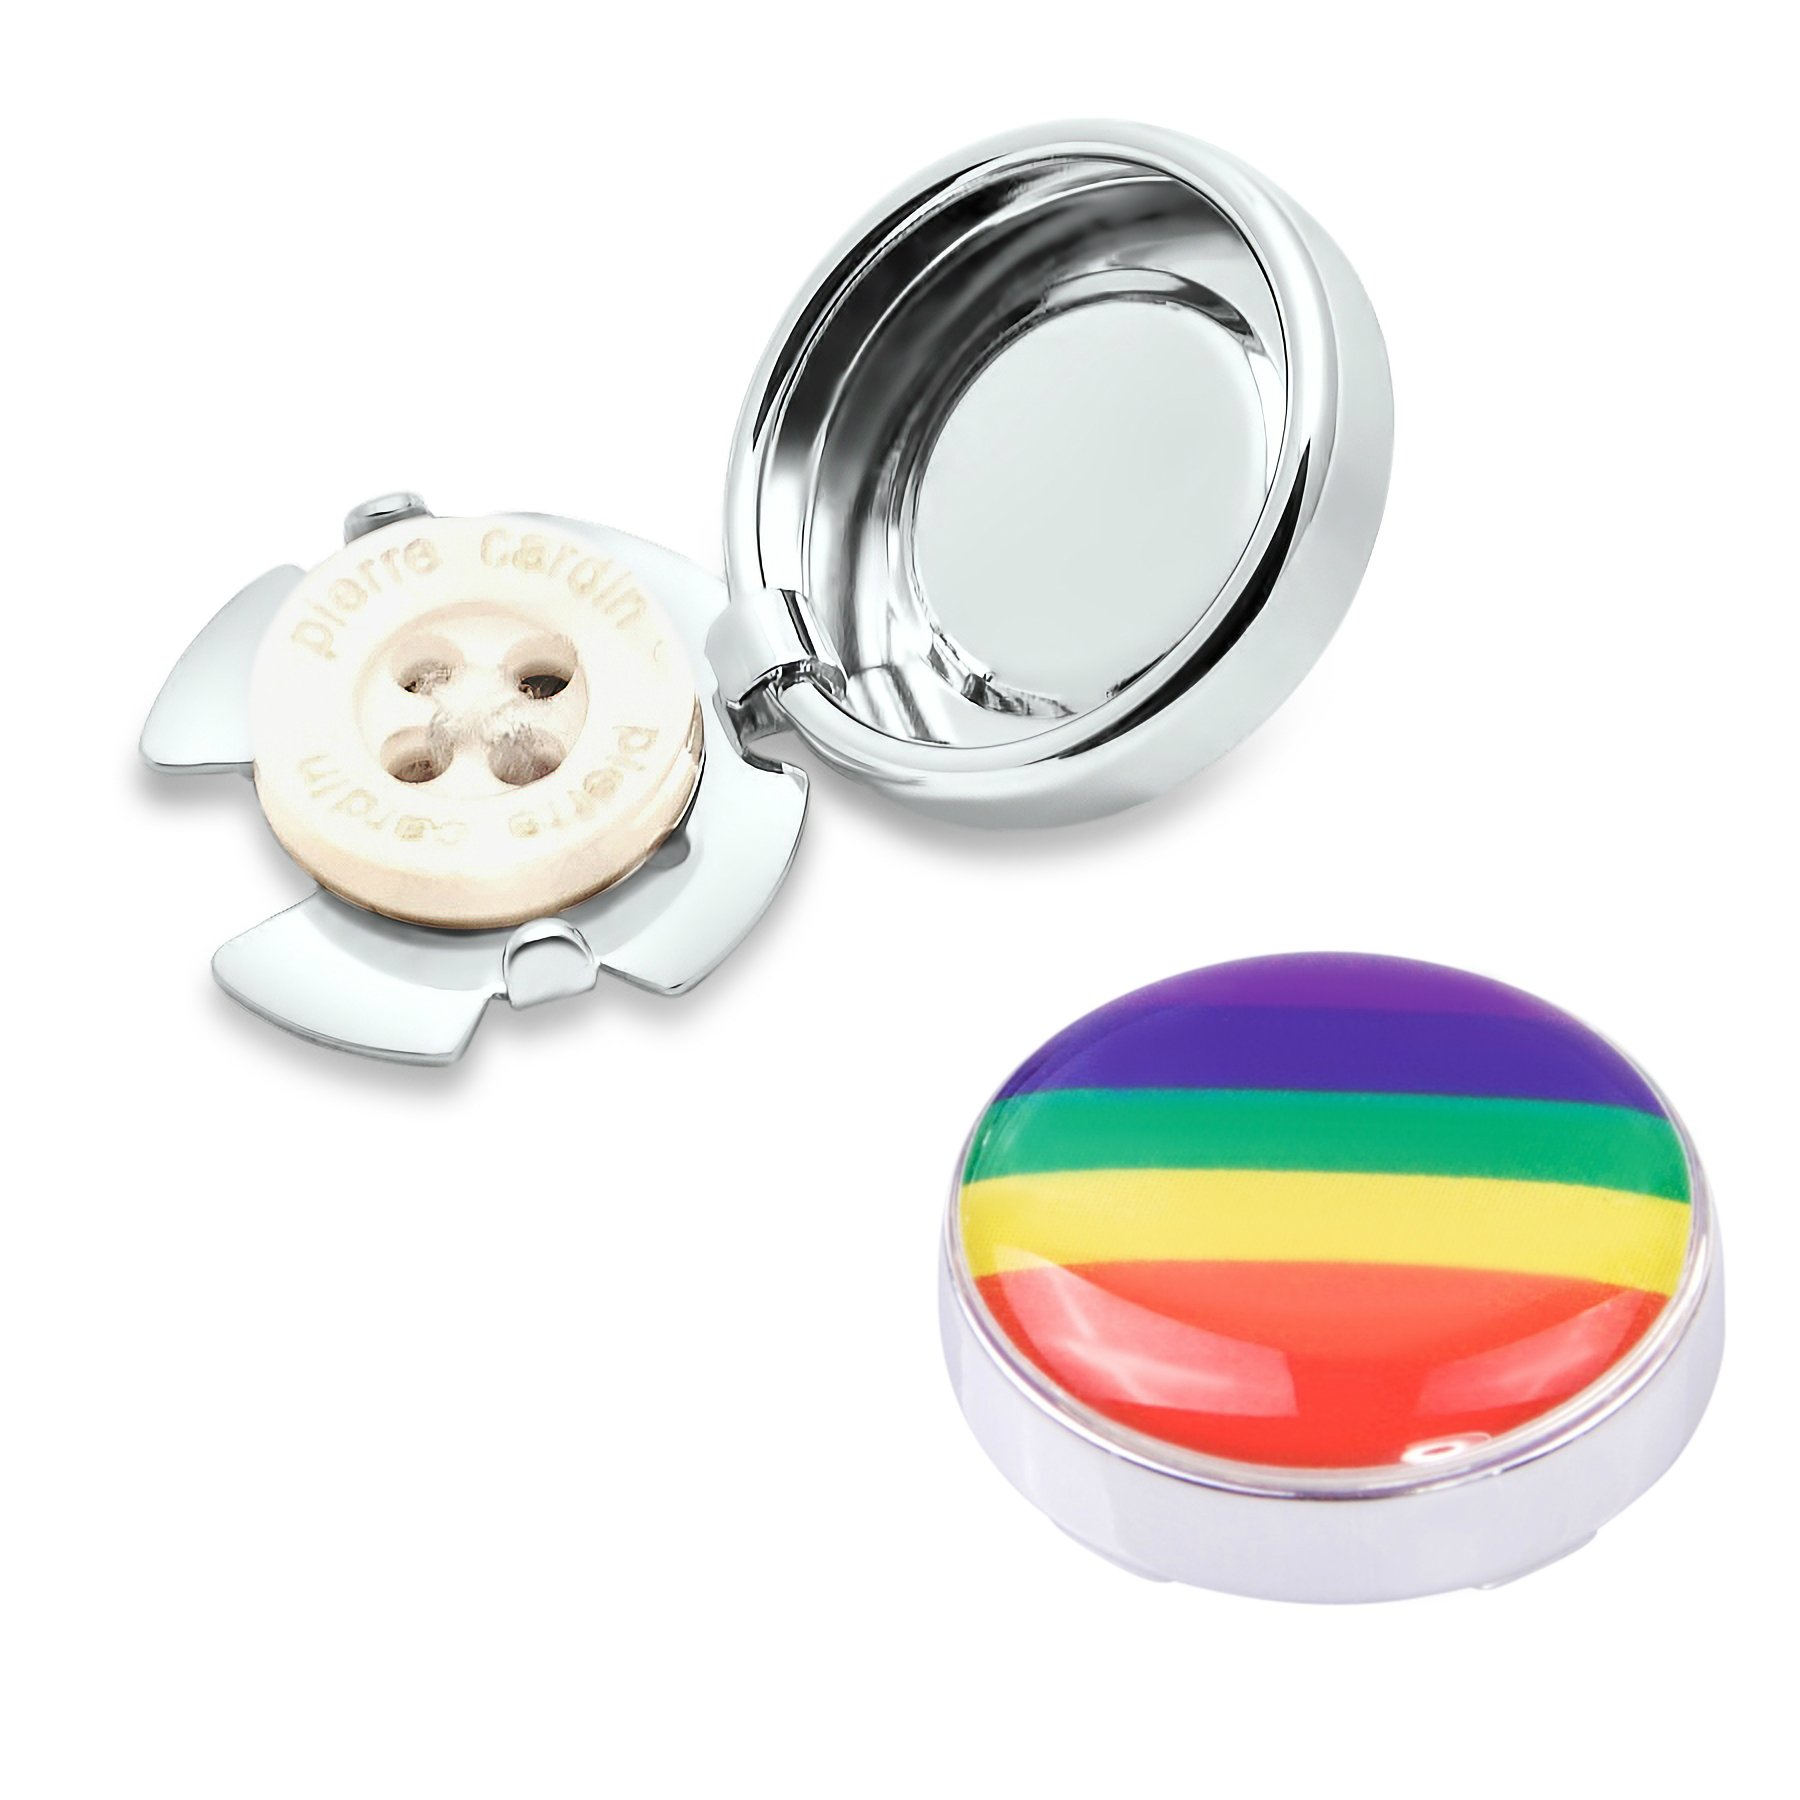 Rainbow LGBT+ Button Covers - Cuff Link Alternative for Shirts, Cuffs and Collars (CS-rain US) by ButtonCuff